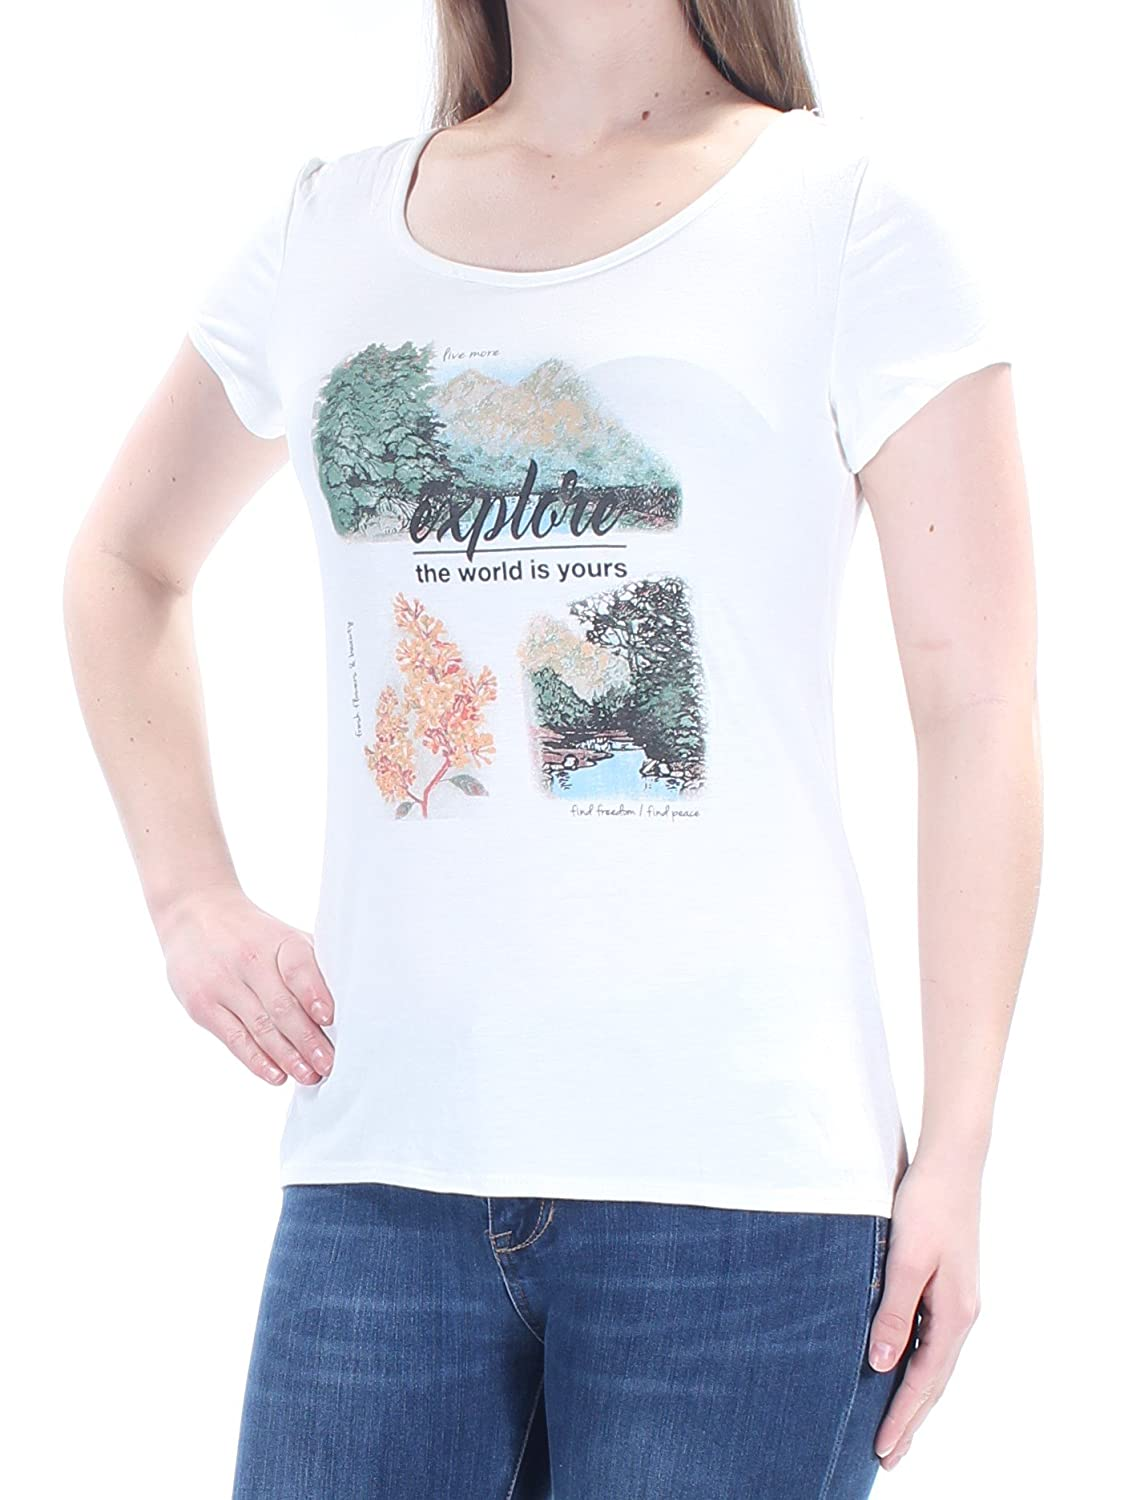 d83d9486f399 Jamie & Layla Womens Glitter Scoop Neck Graphic T-Shirt at Amazon Women's  Clothing store: